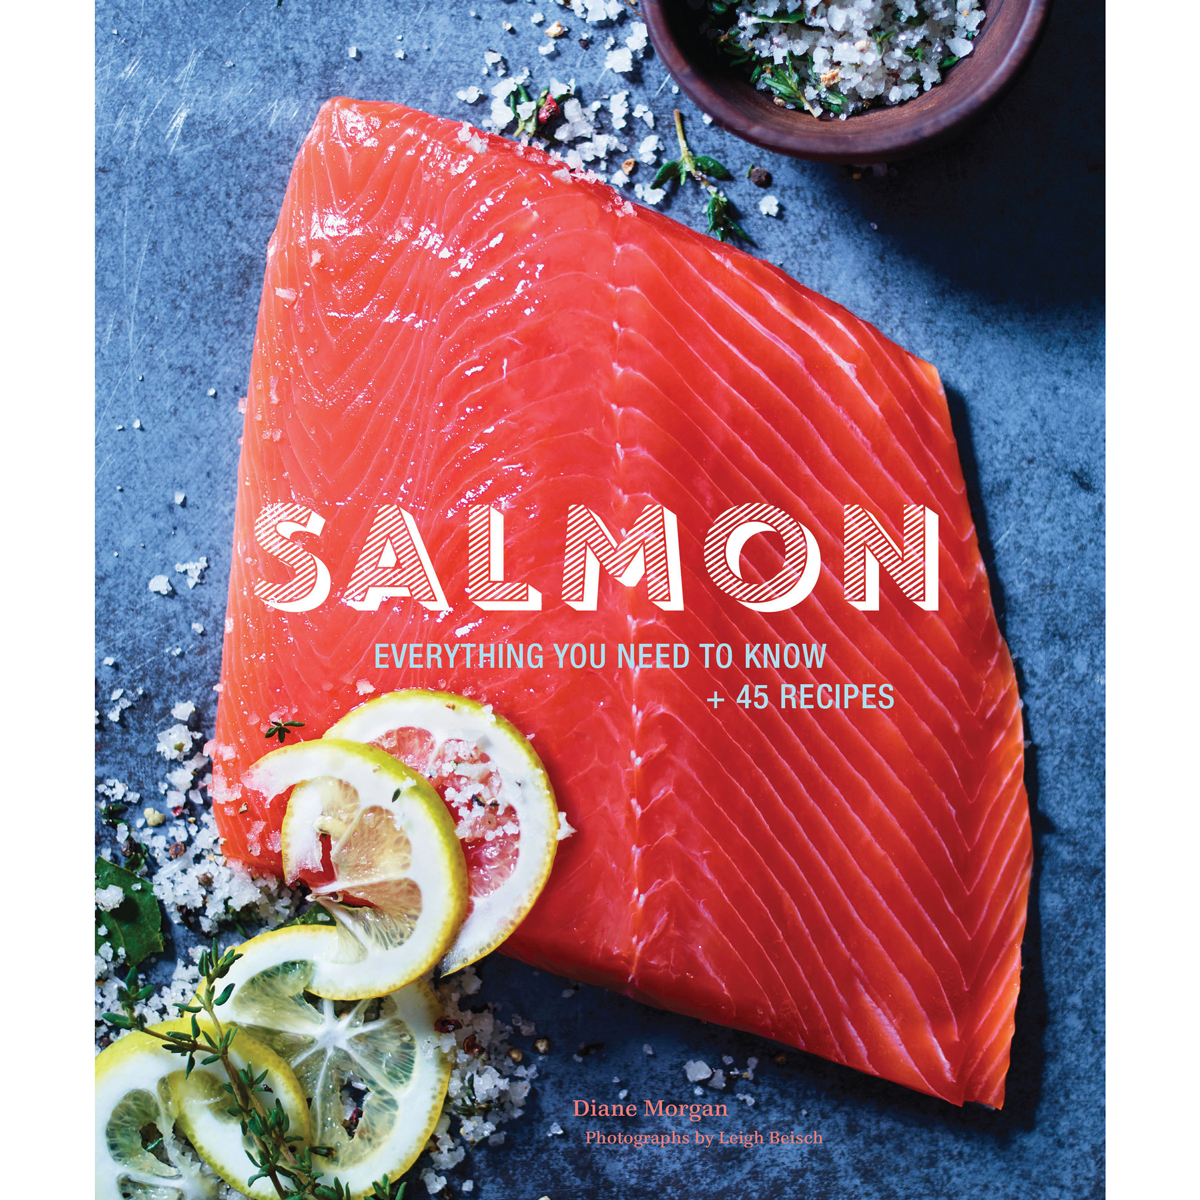 3 Things You Need to Know About Cooking With Salmon